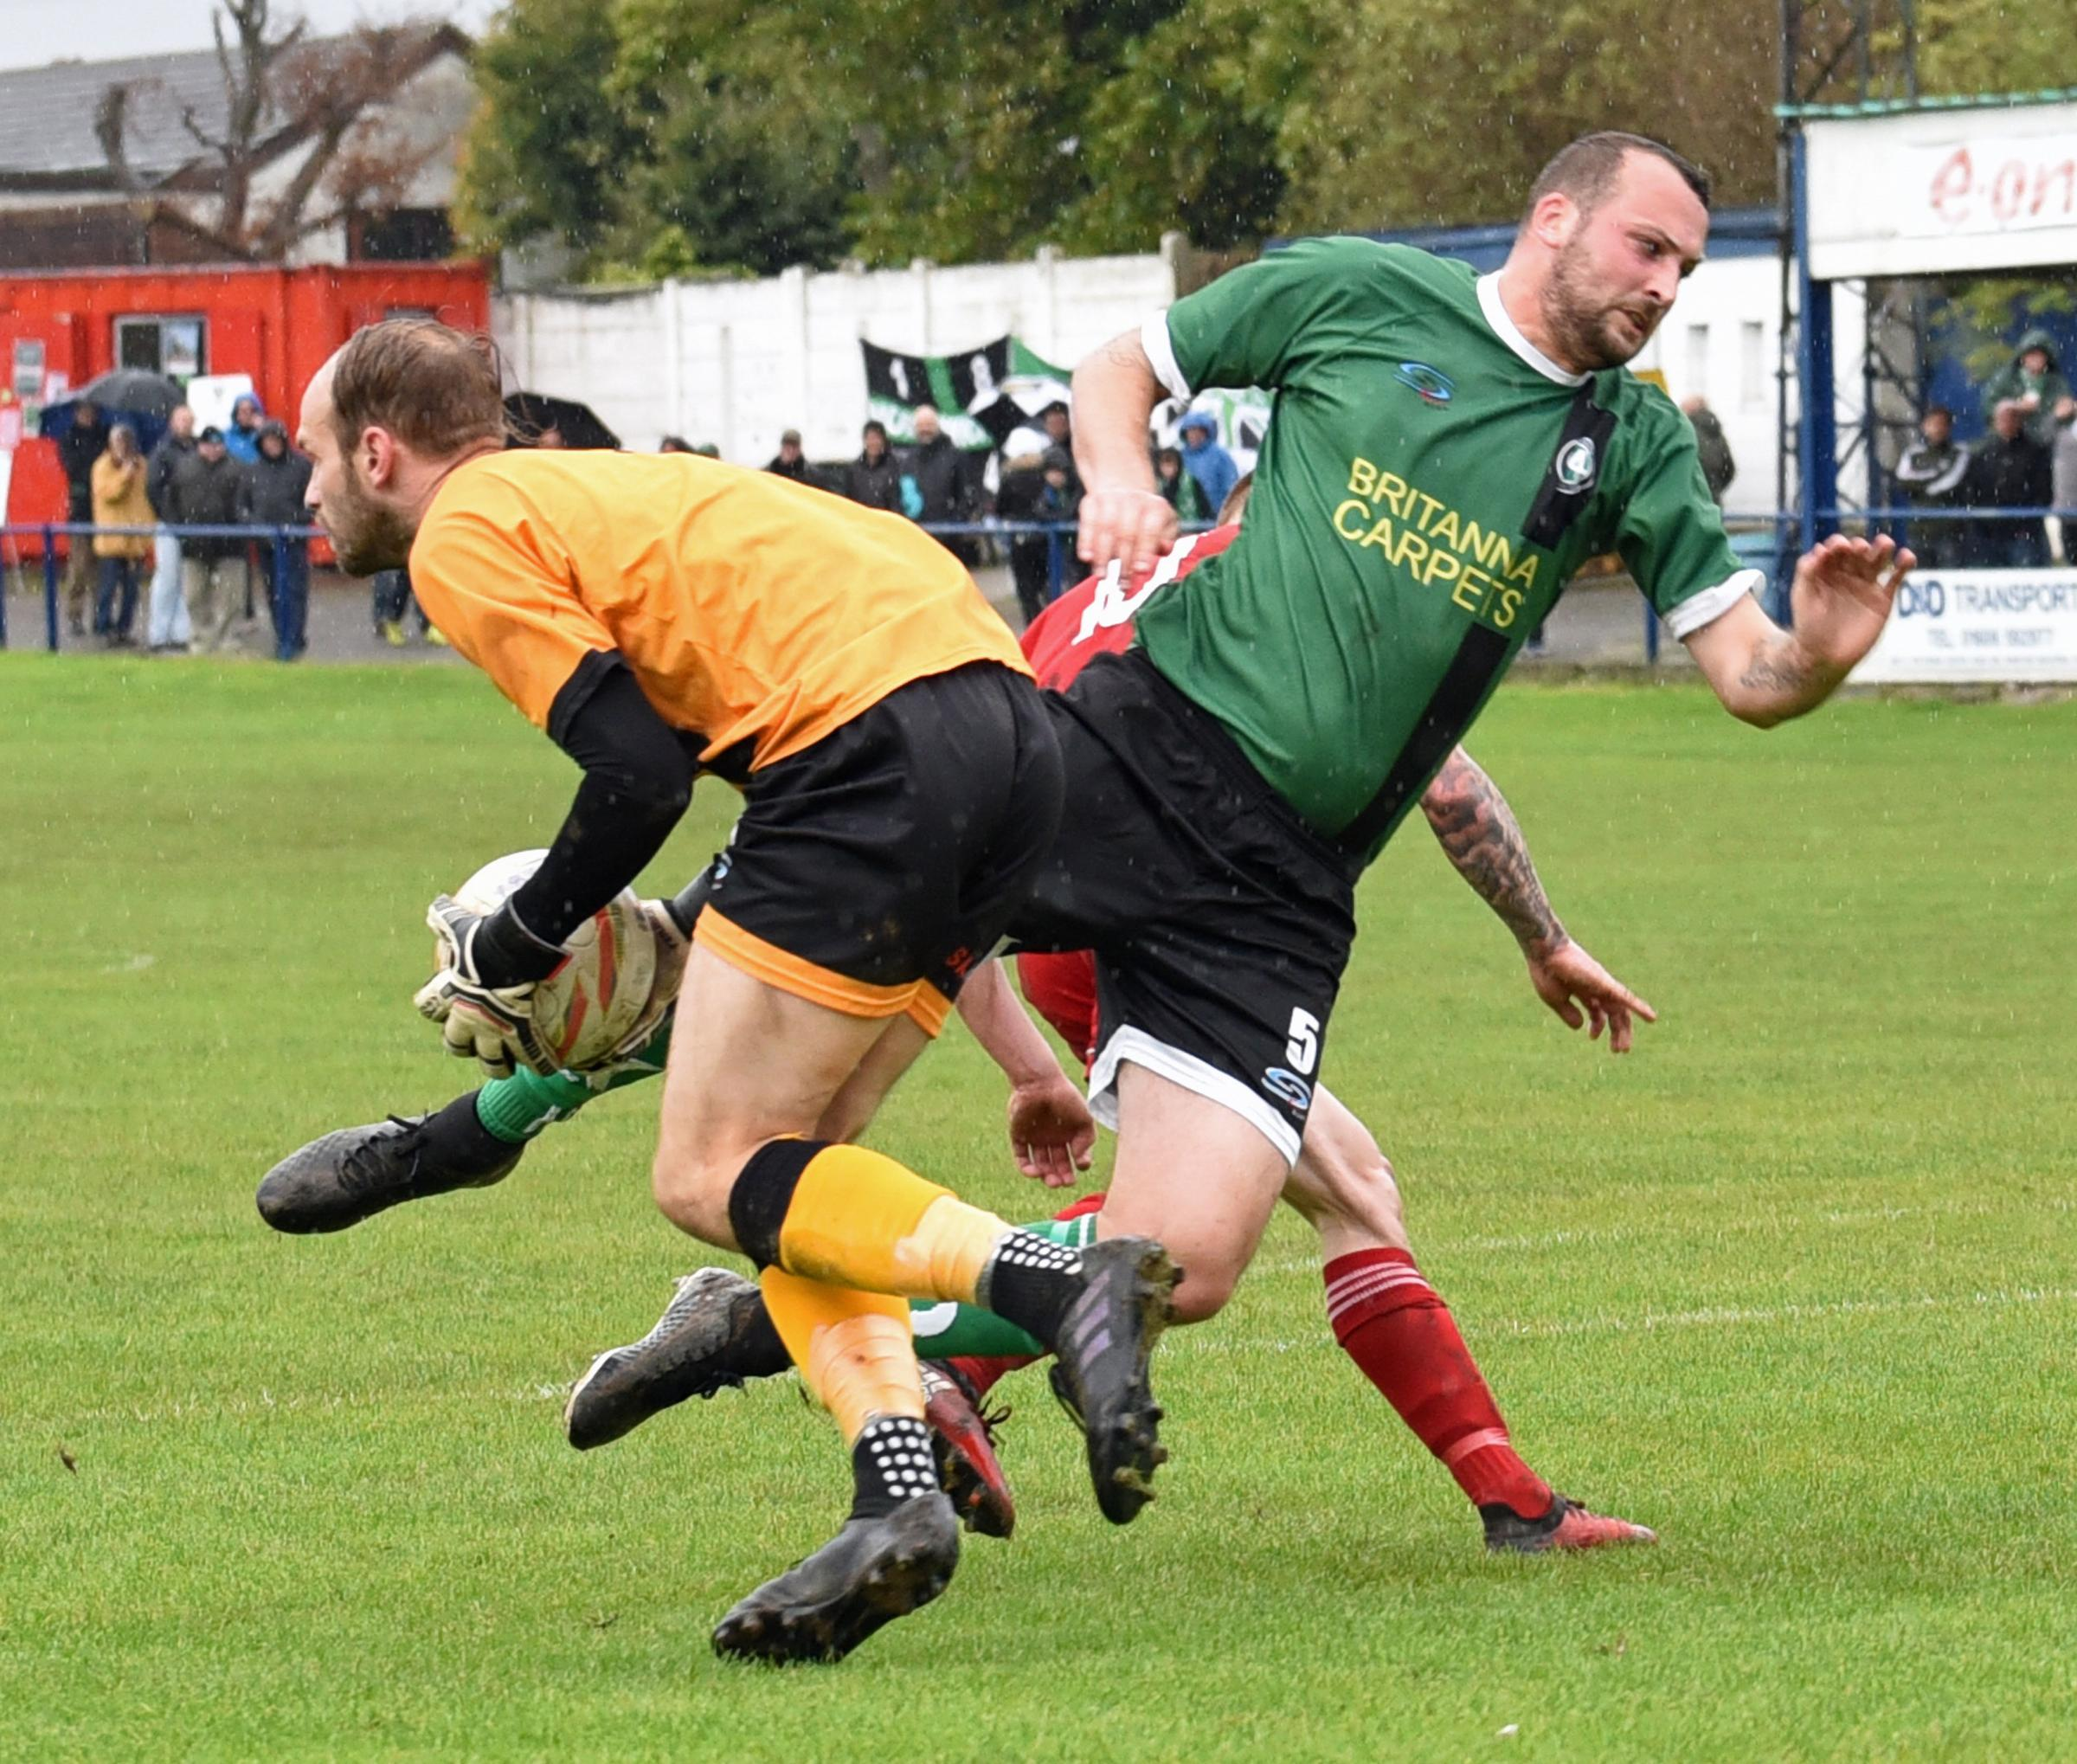 1874 Northwich goalkeeper Greg Hall collects the ball after Danny Meadowcroft, right, shields him from an Ossett Town attacker. Picture: Ian Dutton